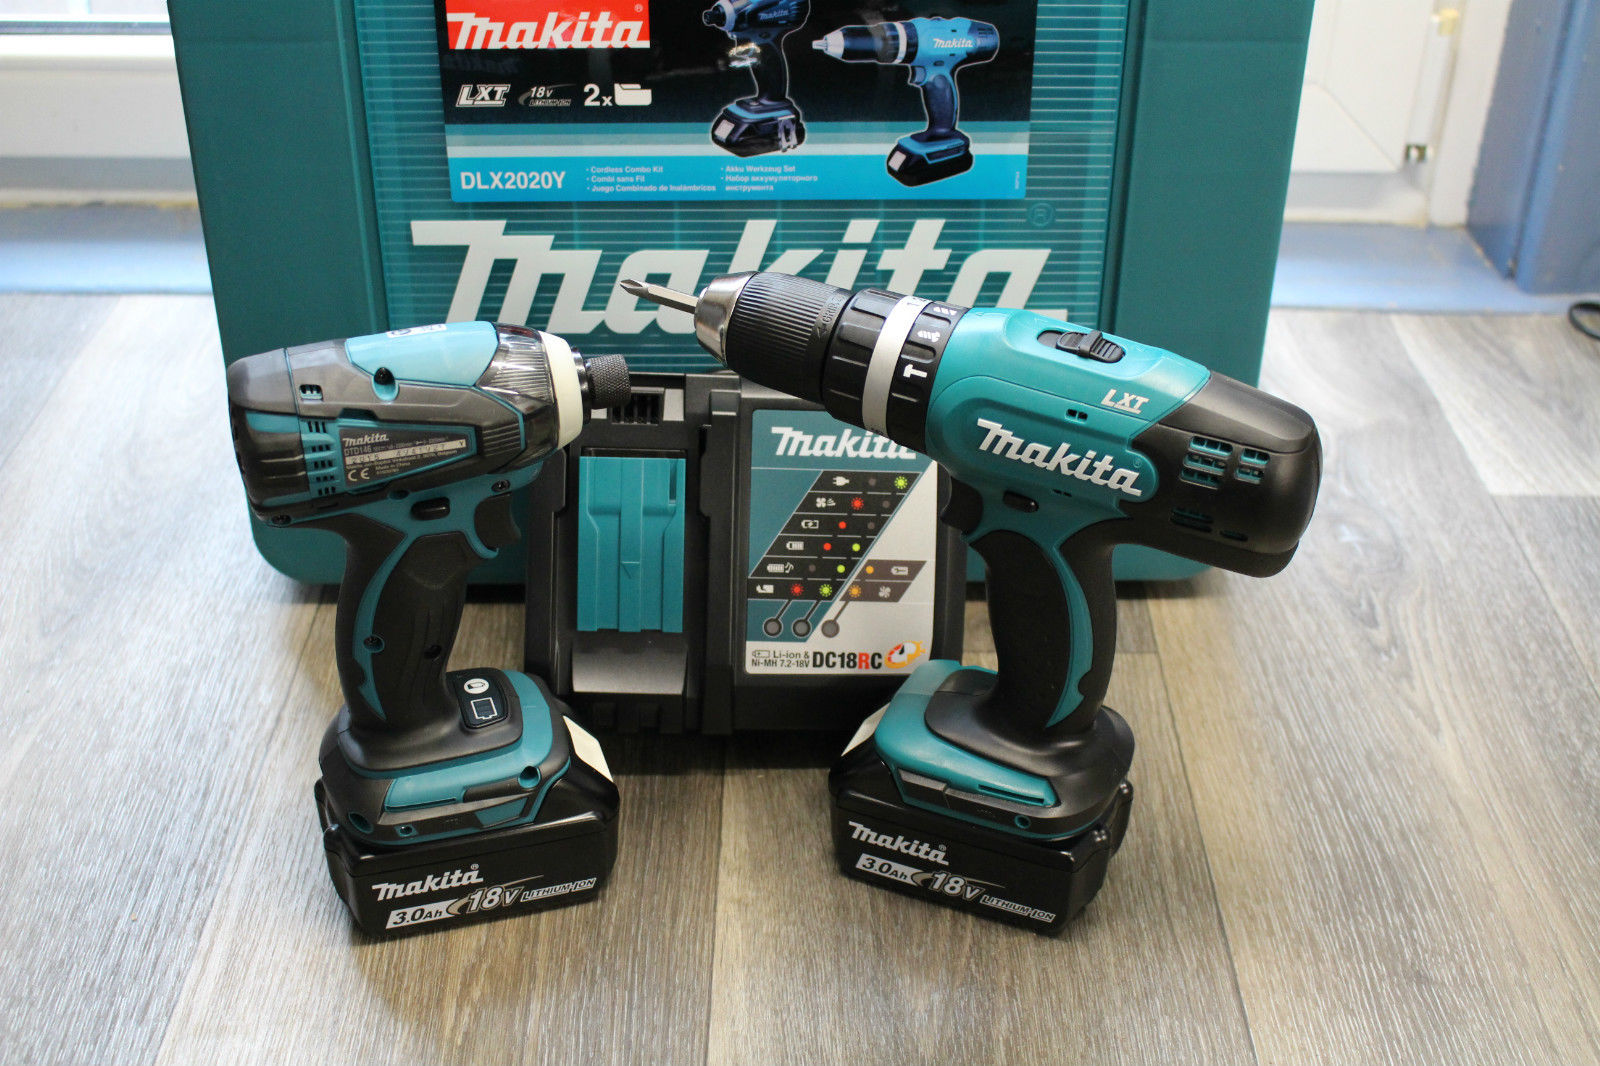 makita superset 18v 3ah accu slagboormachine en accu boormachine nieuw met 2 accu s snellader. Black Bedroom Furniture Sets. Home Design Ideas